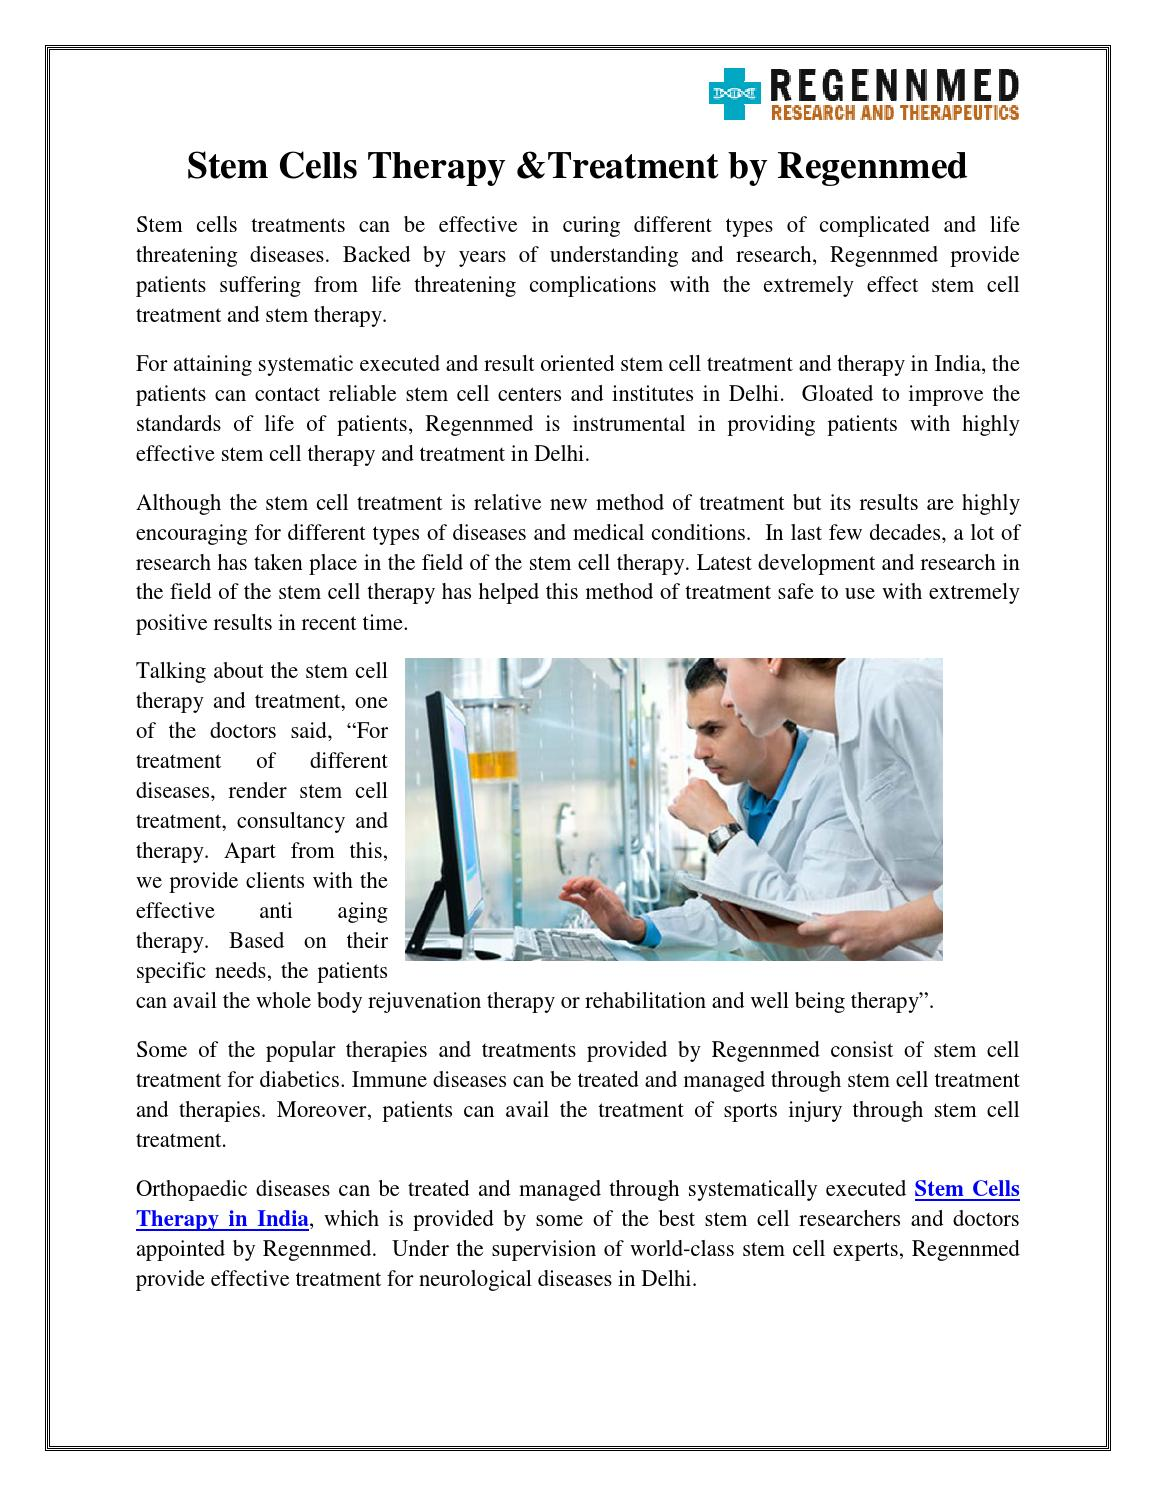 Stem cells therapy &treatment by regennmed by regennmed - issuu